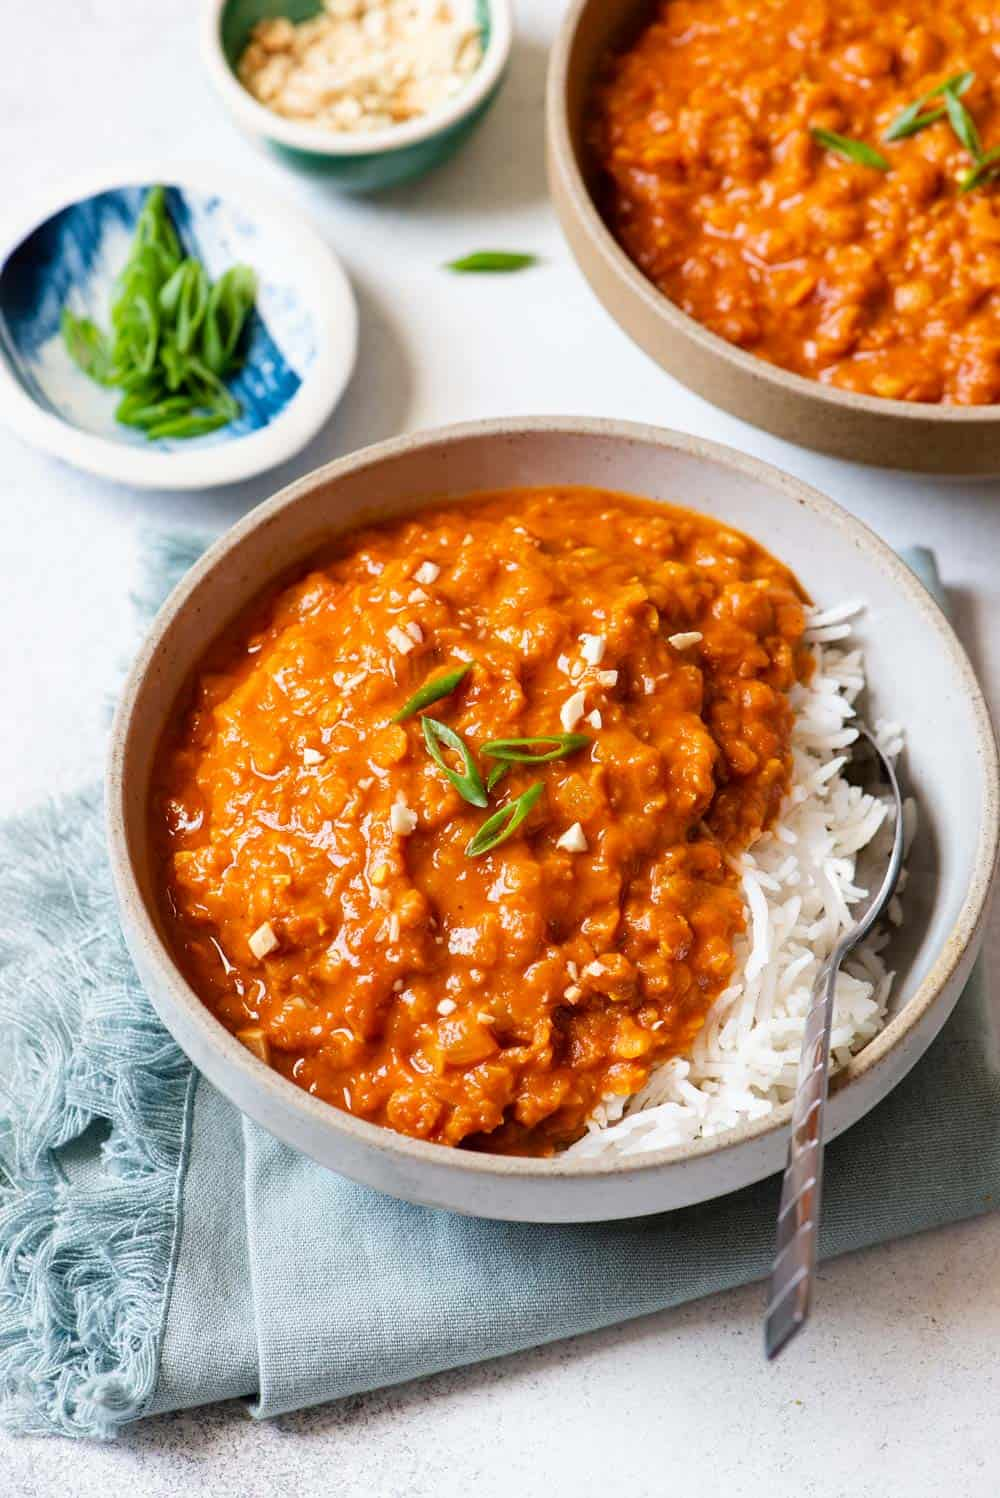 Simple Red Lentil Curry Creamy And Flavorful Healthy Nibbles